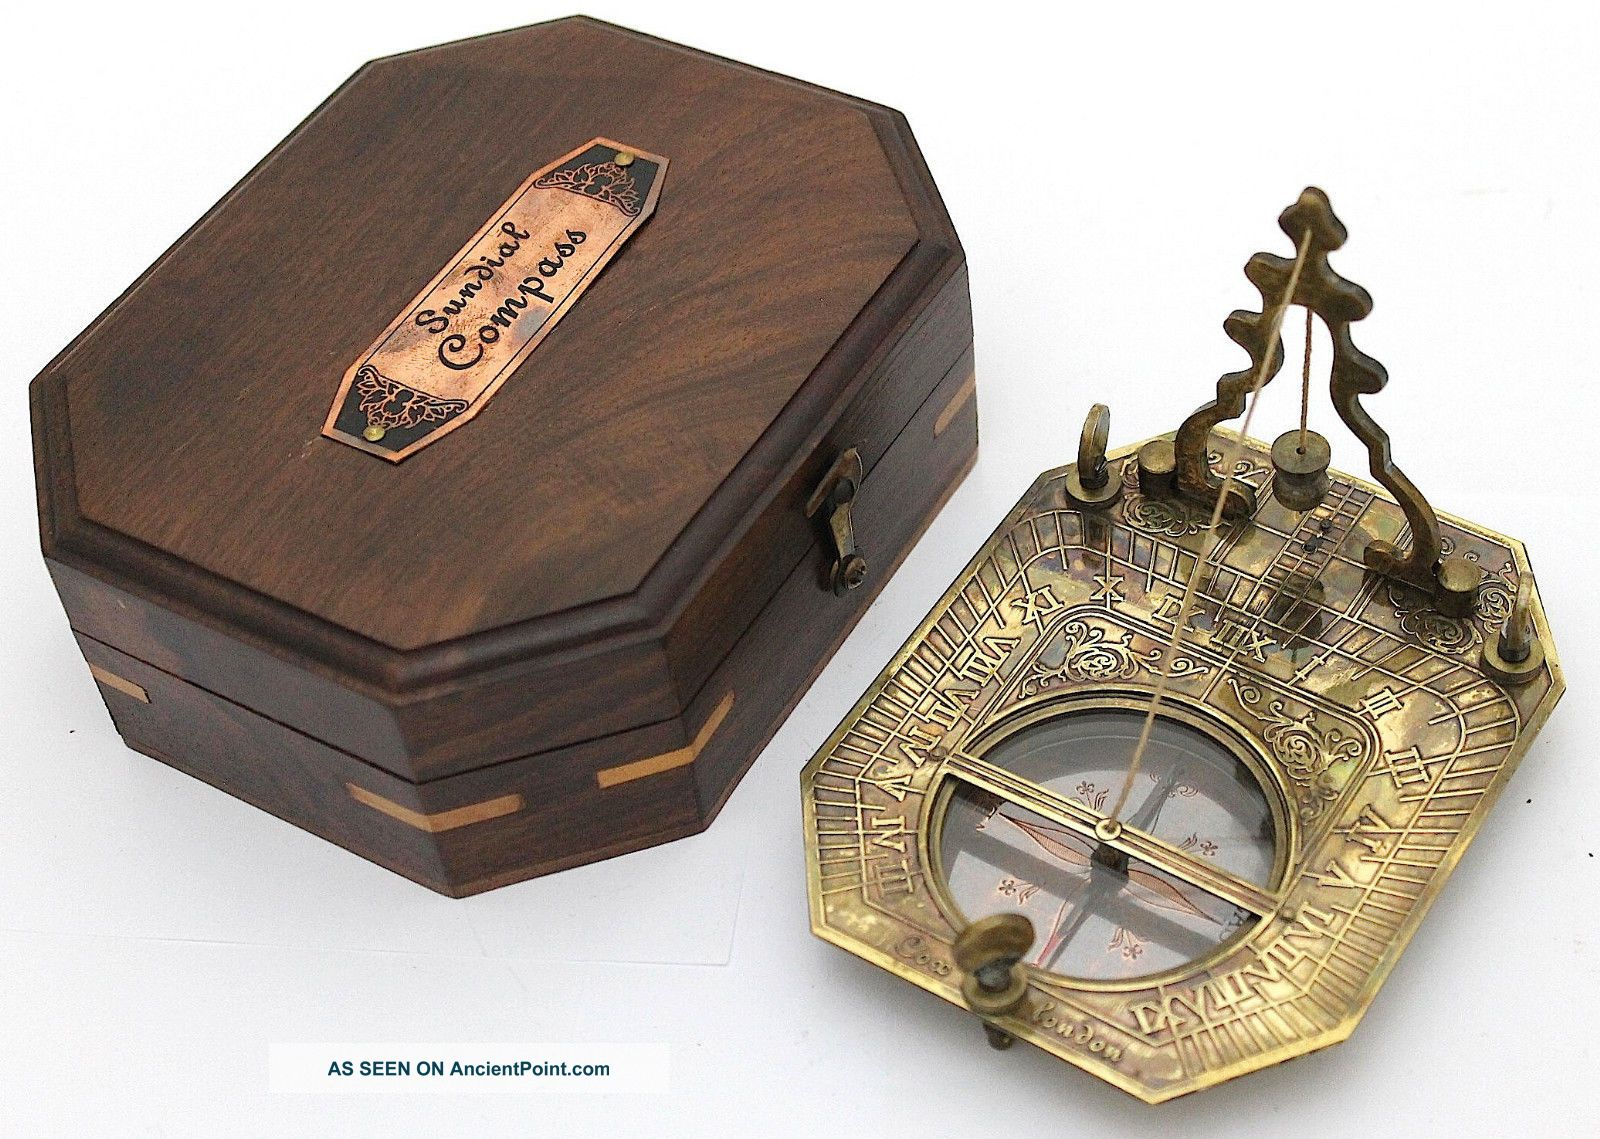 Solid Brass Pendulum Sundial And Compass In Hardwood Box - Brass Sundial Compass Other Maritime Antiques photo